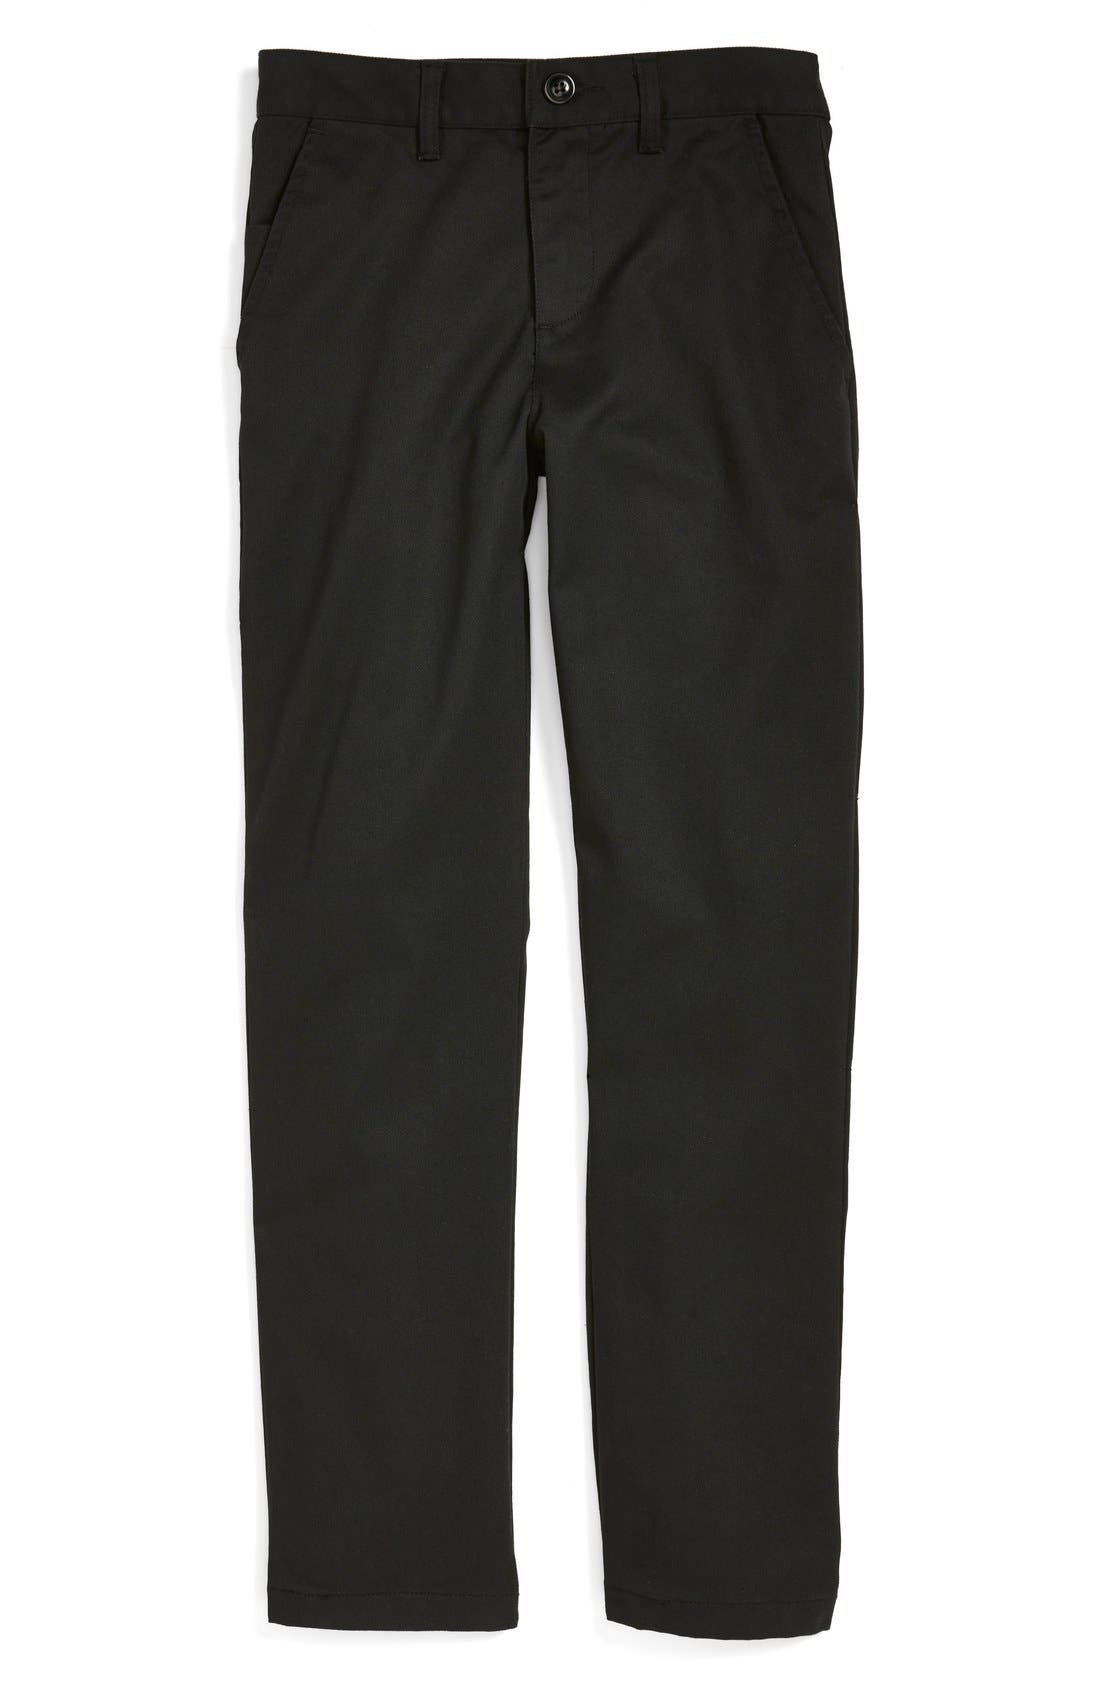 'Weekday' Stretch Chinos,                         Main,                         color,